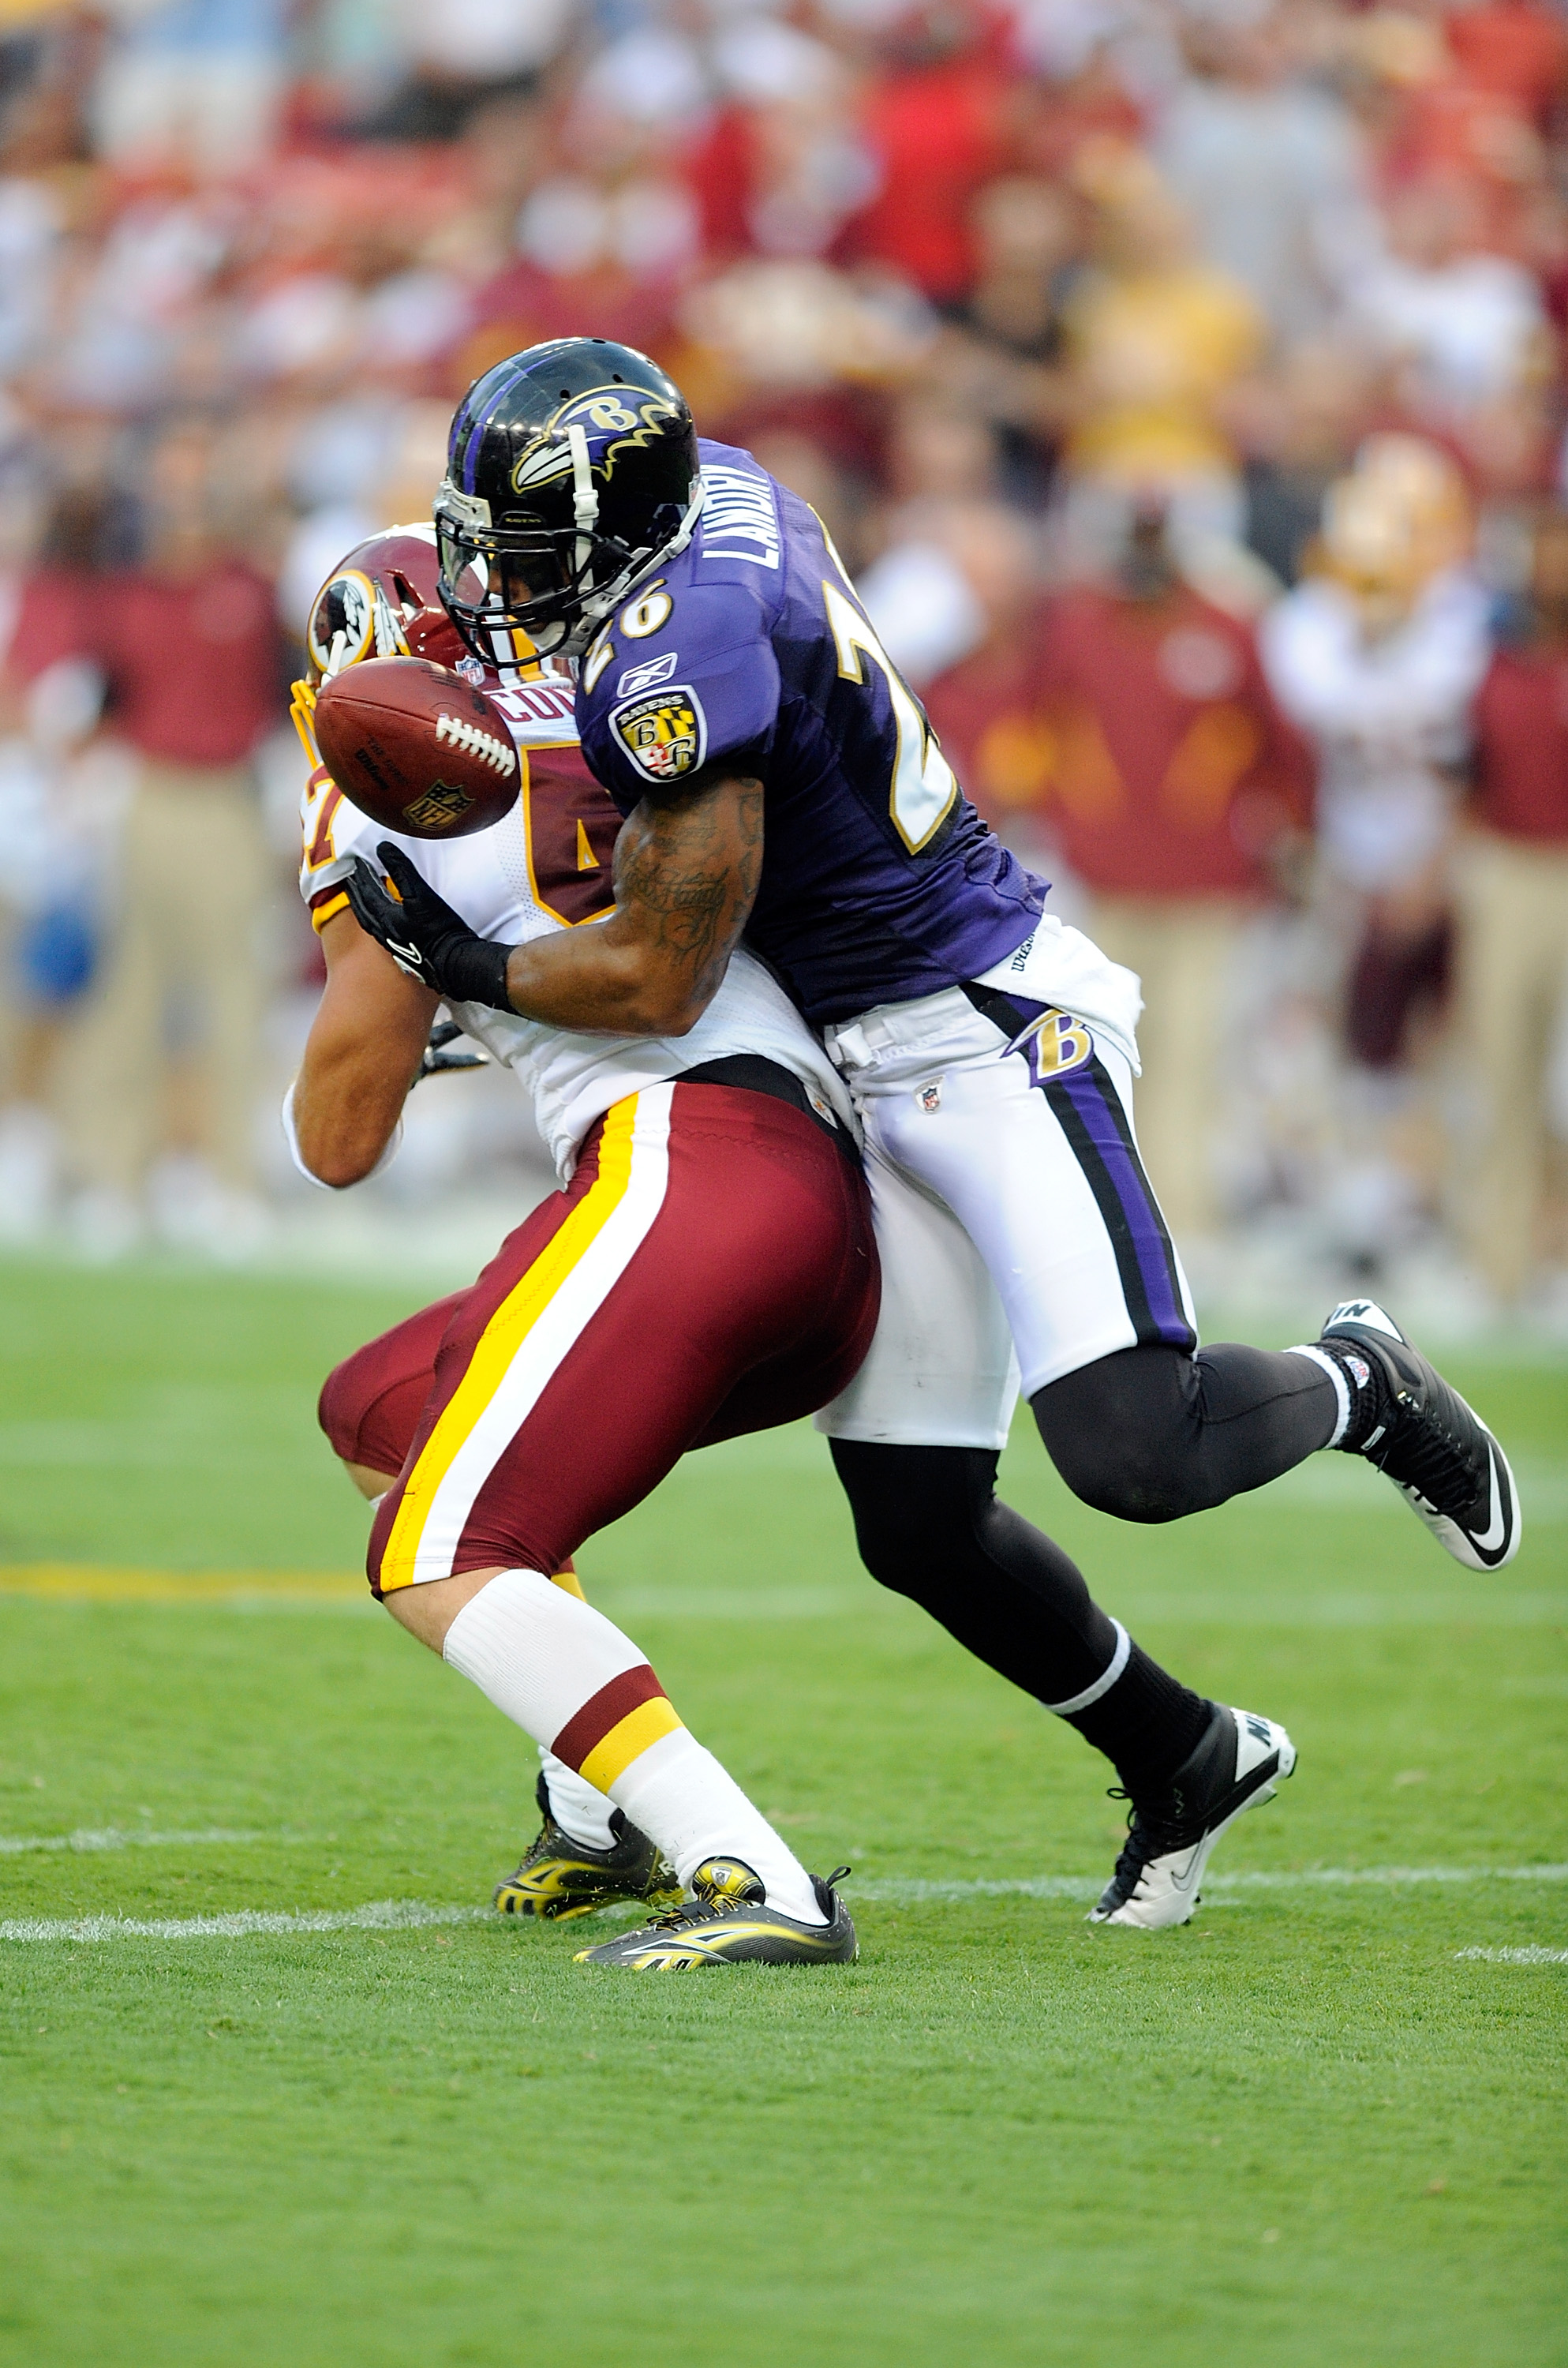 LANDOVER, MD - AUGUST 21:  Dawan Landry #26 of the Baltimore Ravens breaks up a pass during the preseason game intended for Chris Cooley #47 of the Washington Redskins at FedExField on August 21, 2010 in Landover, Maryland.  (Photo by Greg Fiume/Getty Ima